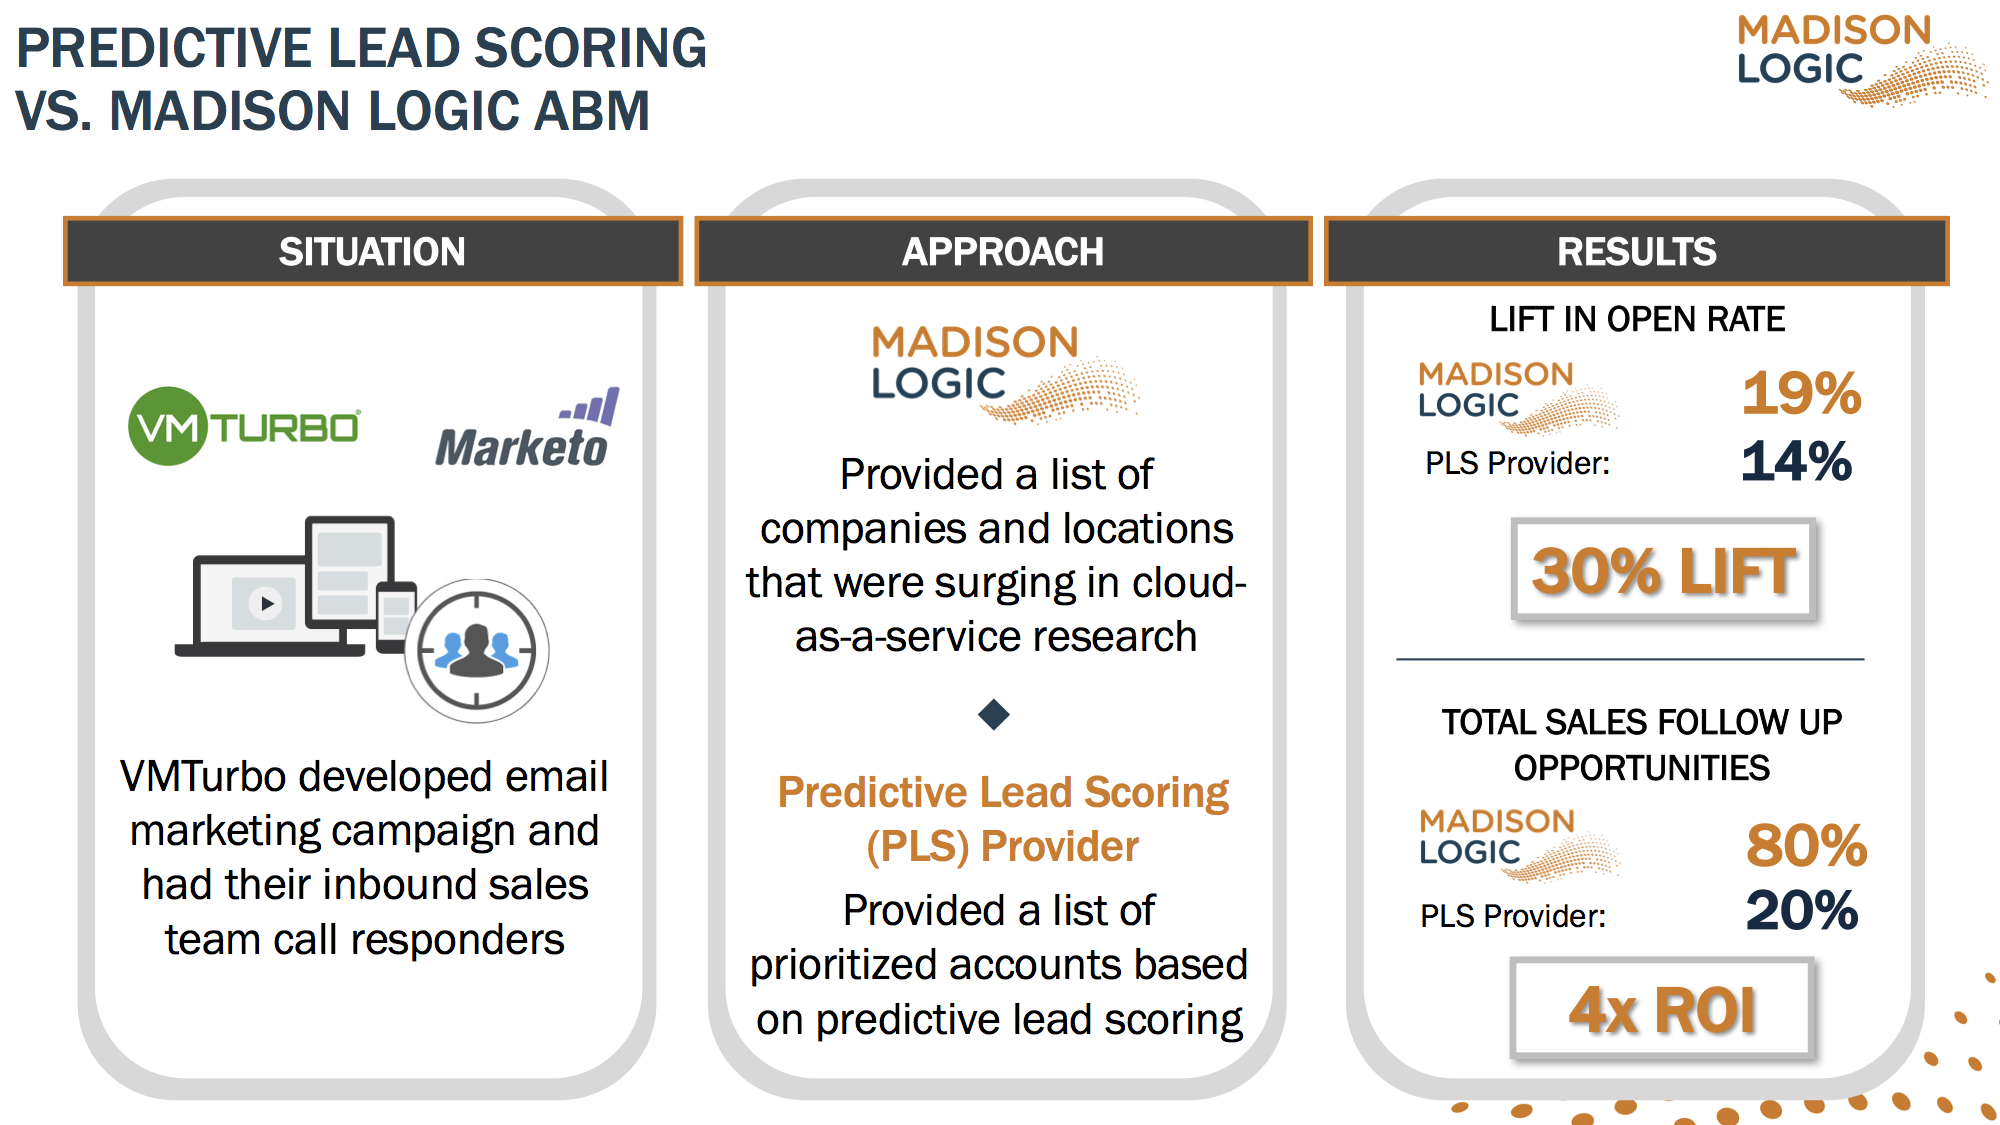 predictive-lead-scoring-vs-ml-abm-copy